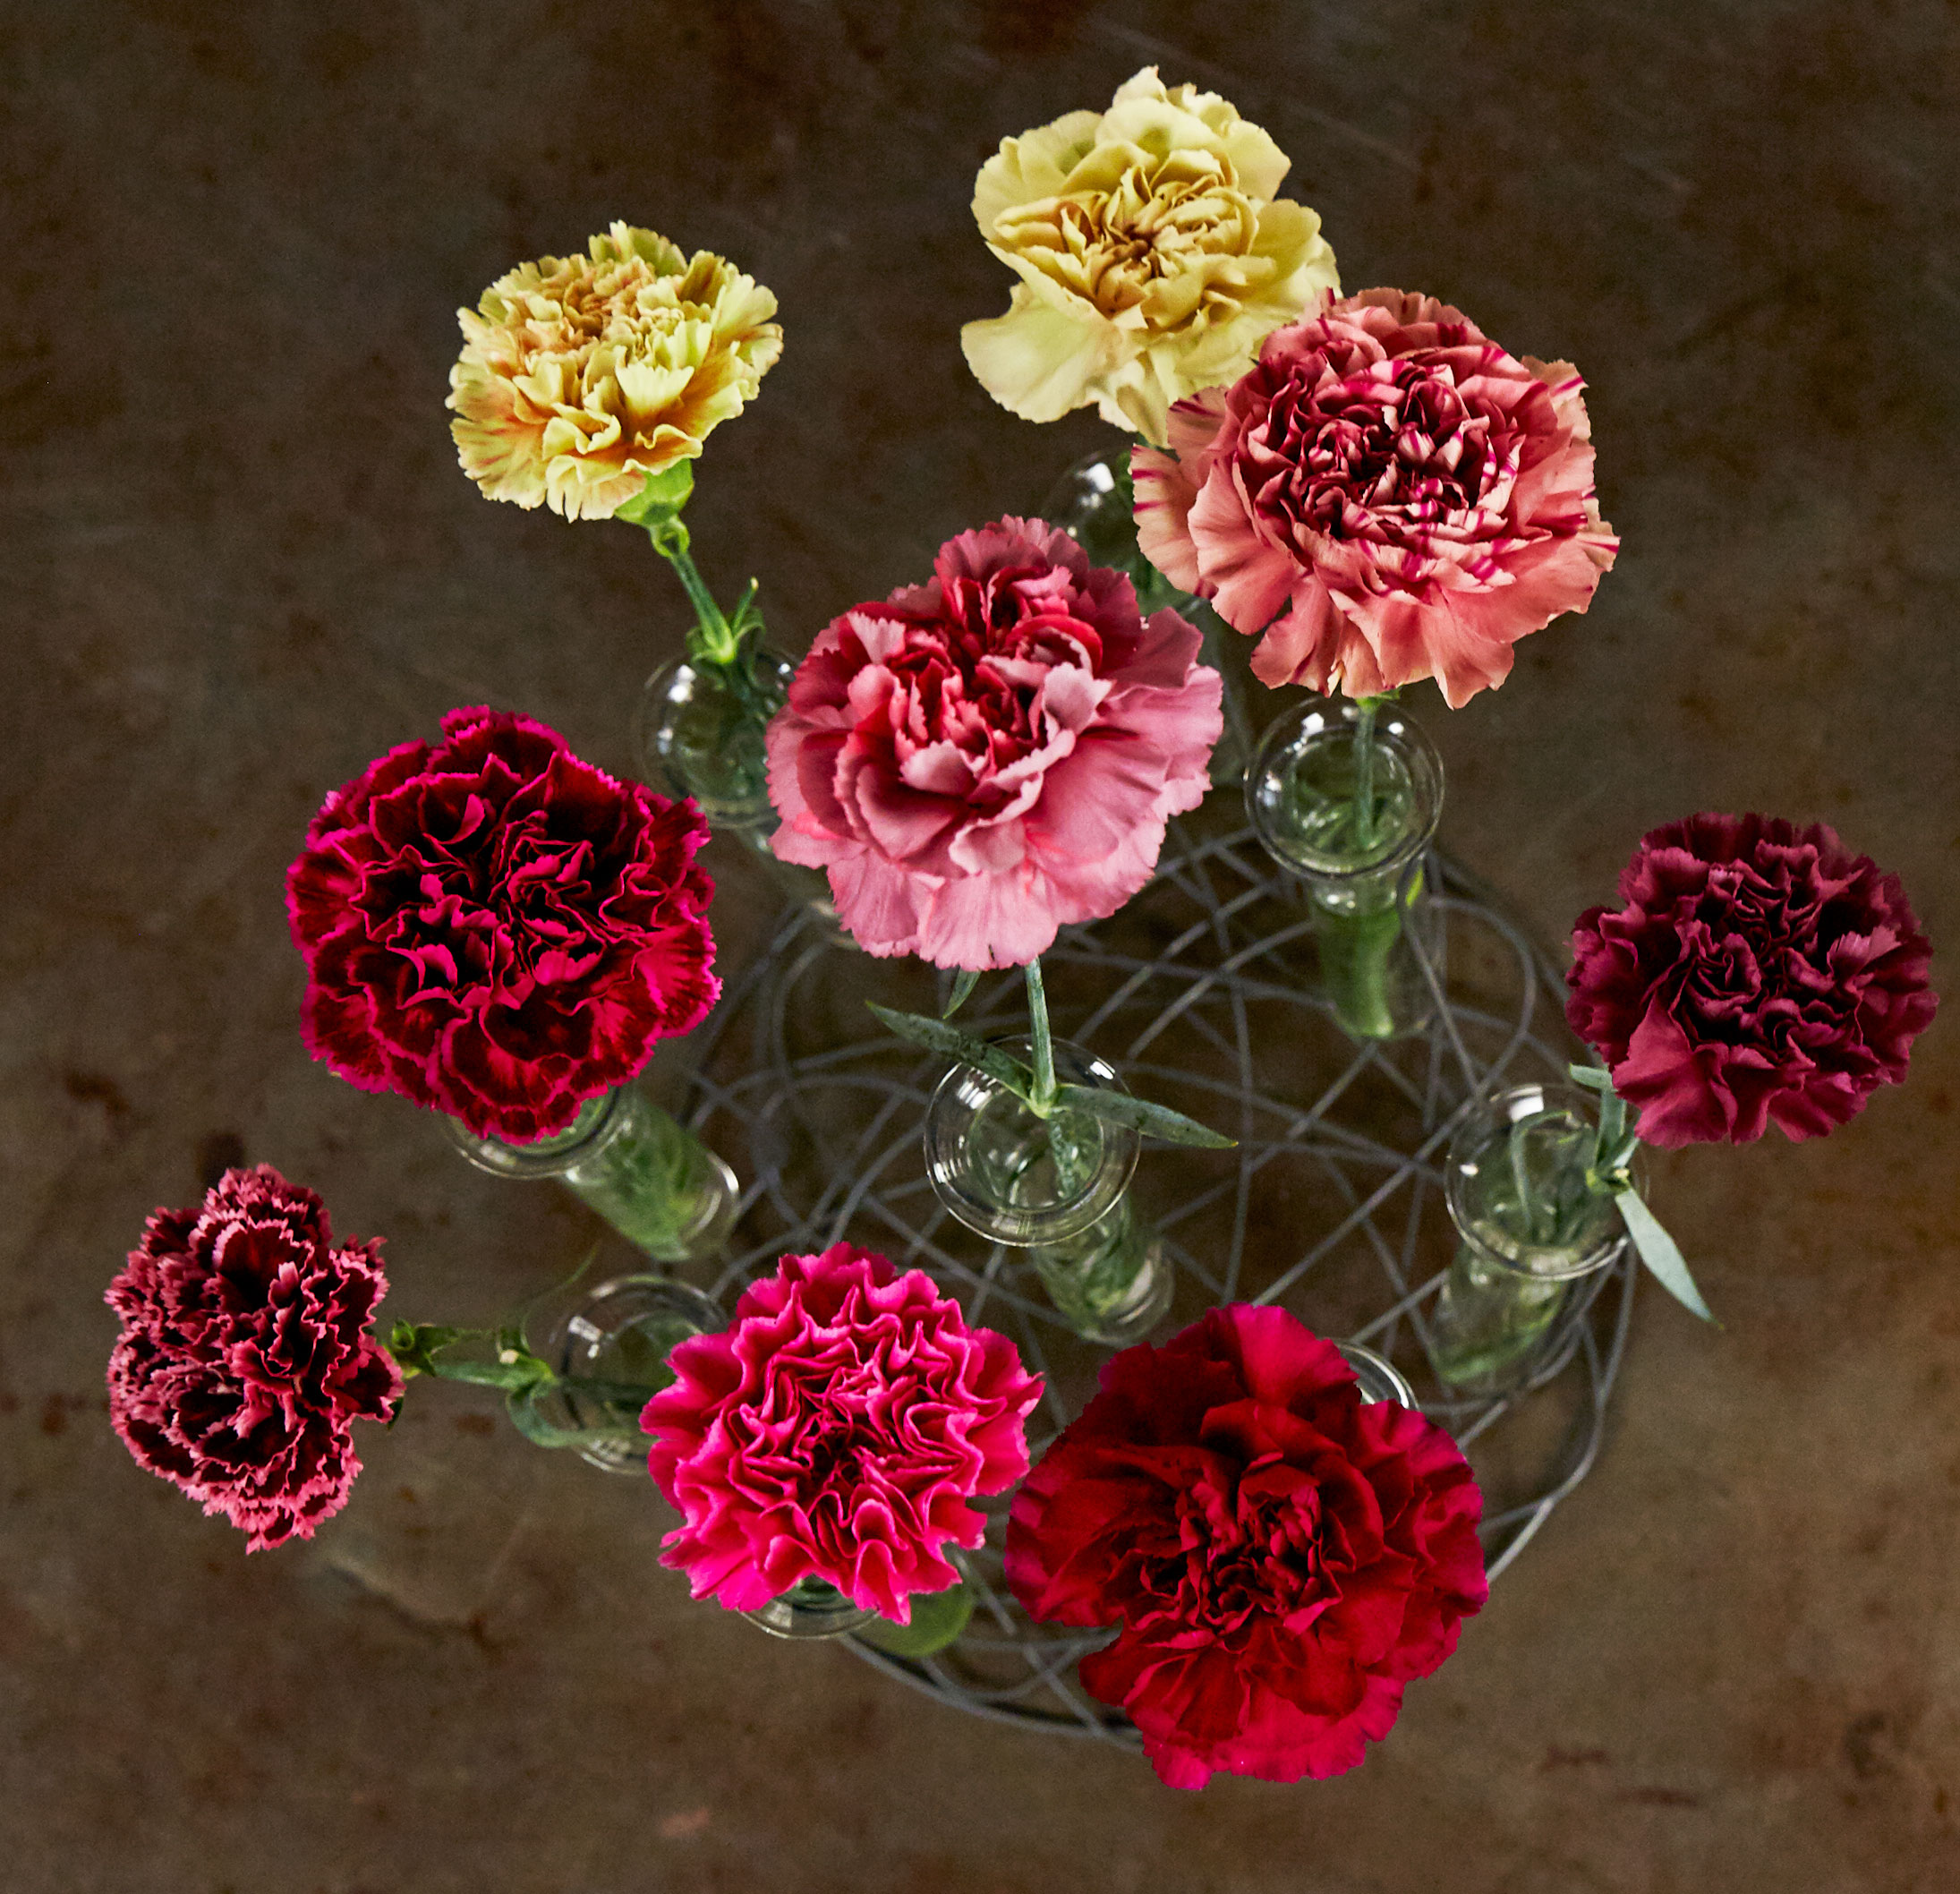 Have you seen Carnations like these?